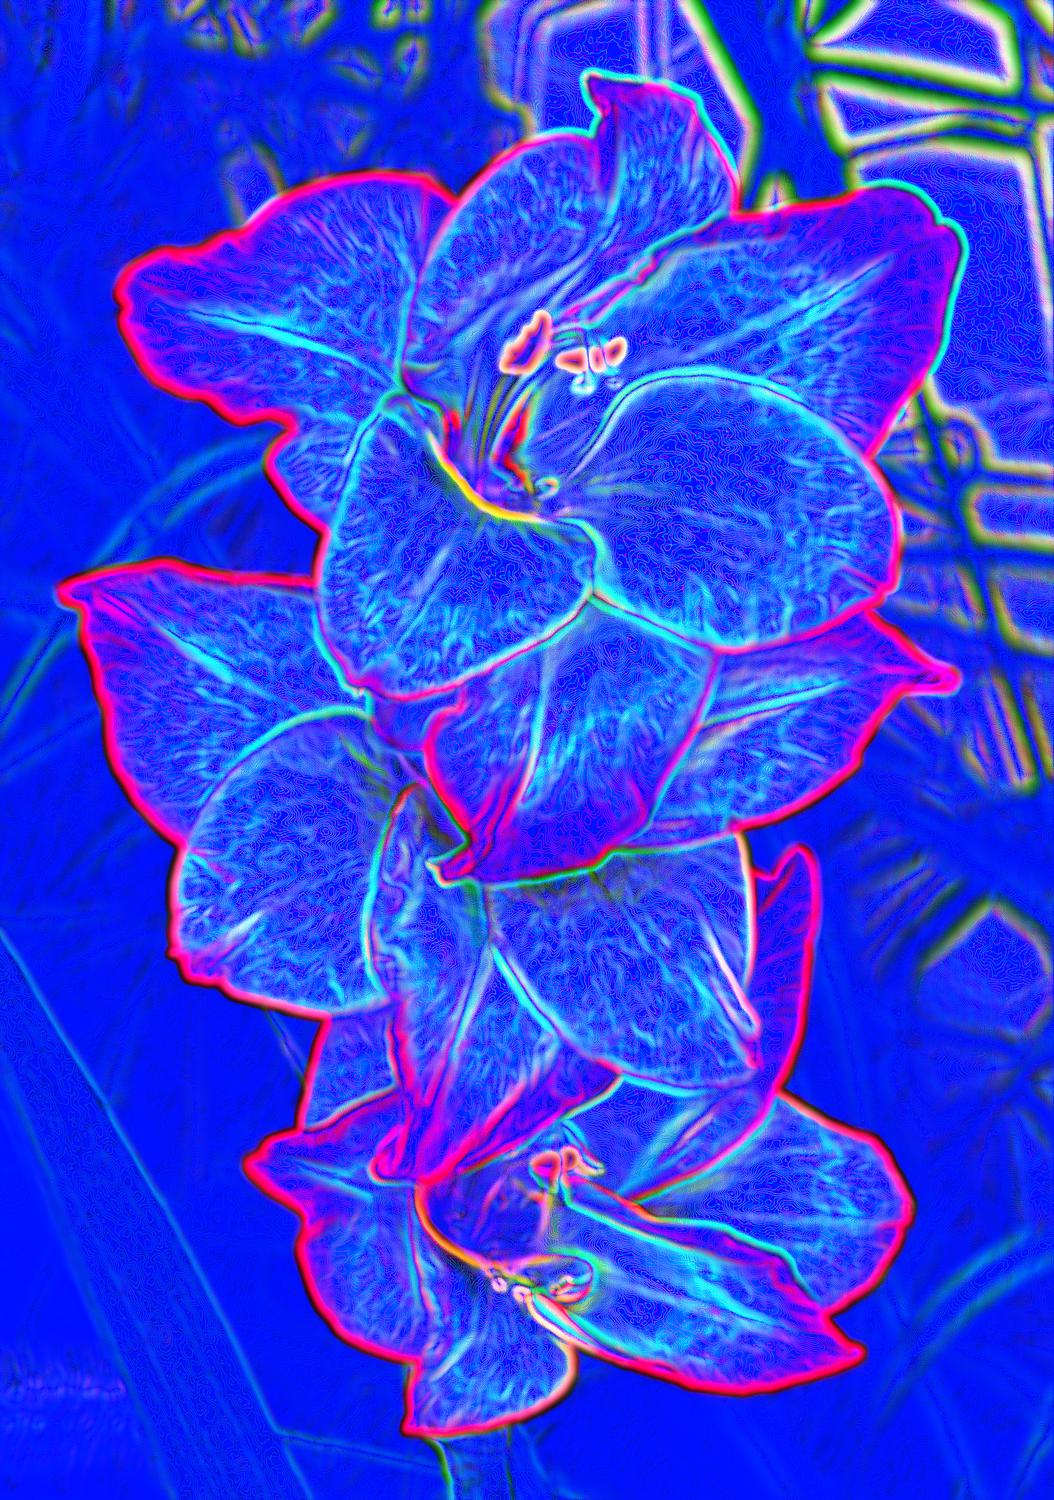 blue flowers - And some blue ones I thought you'd like. - - art  - photography - by Tony Karp